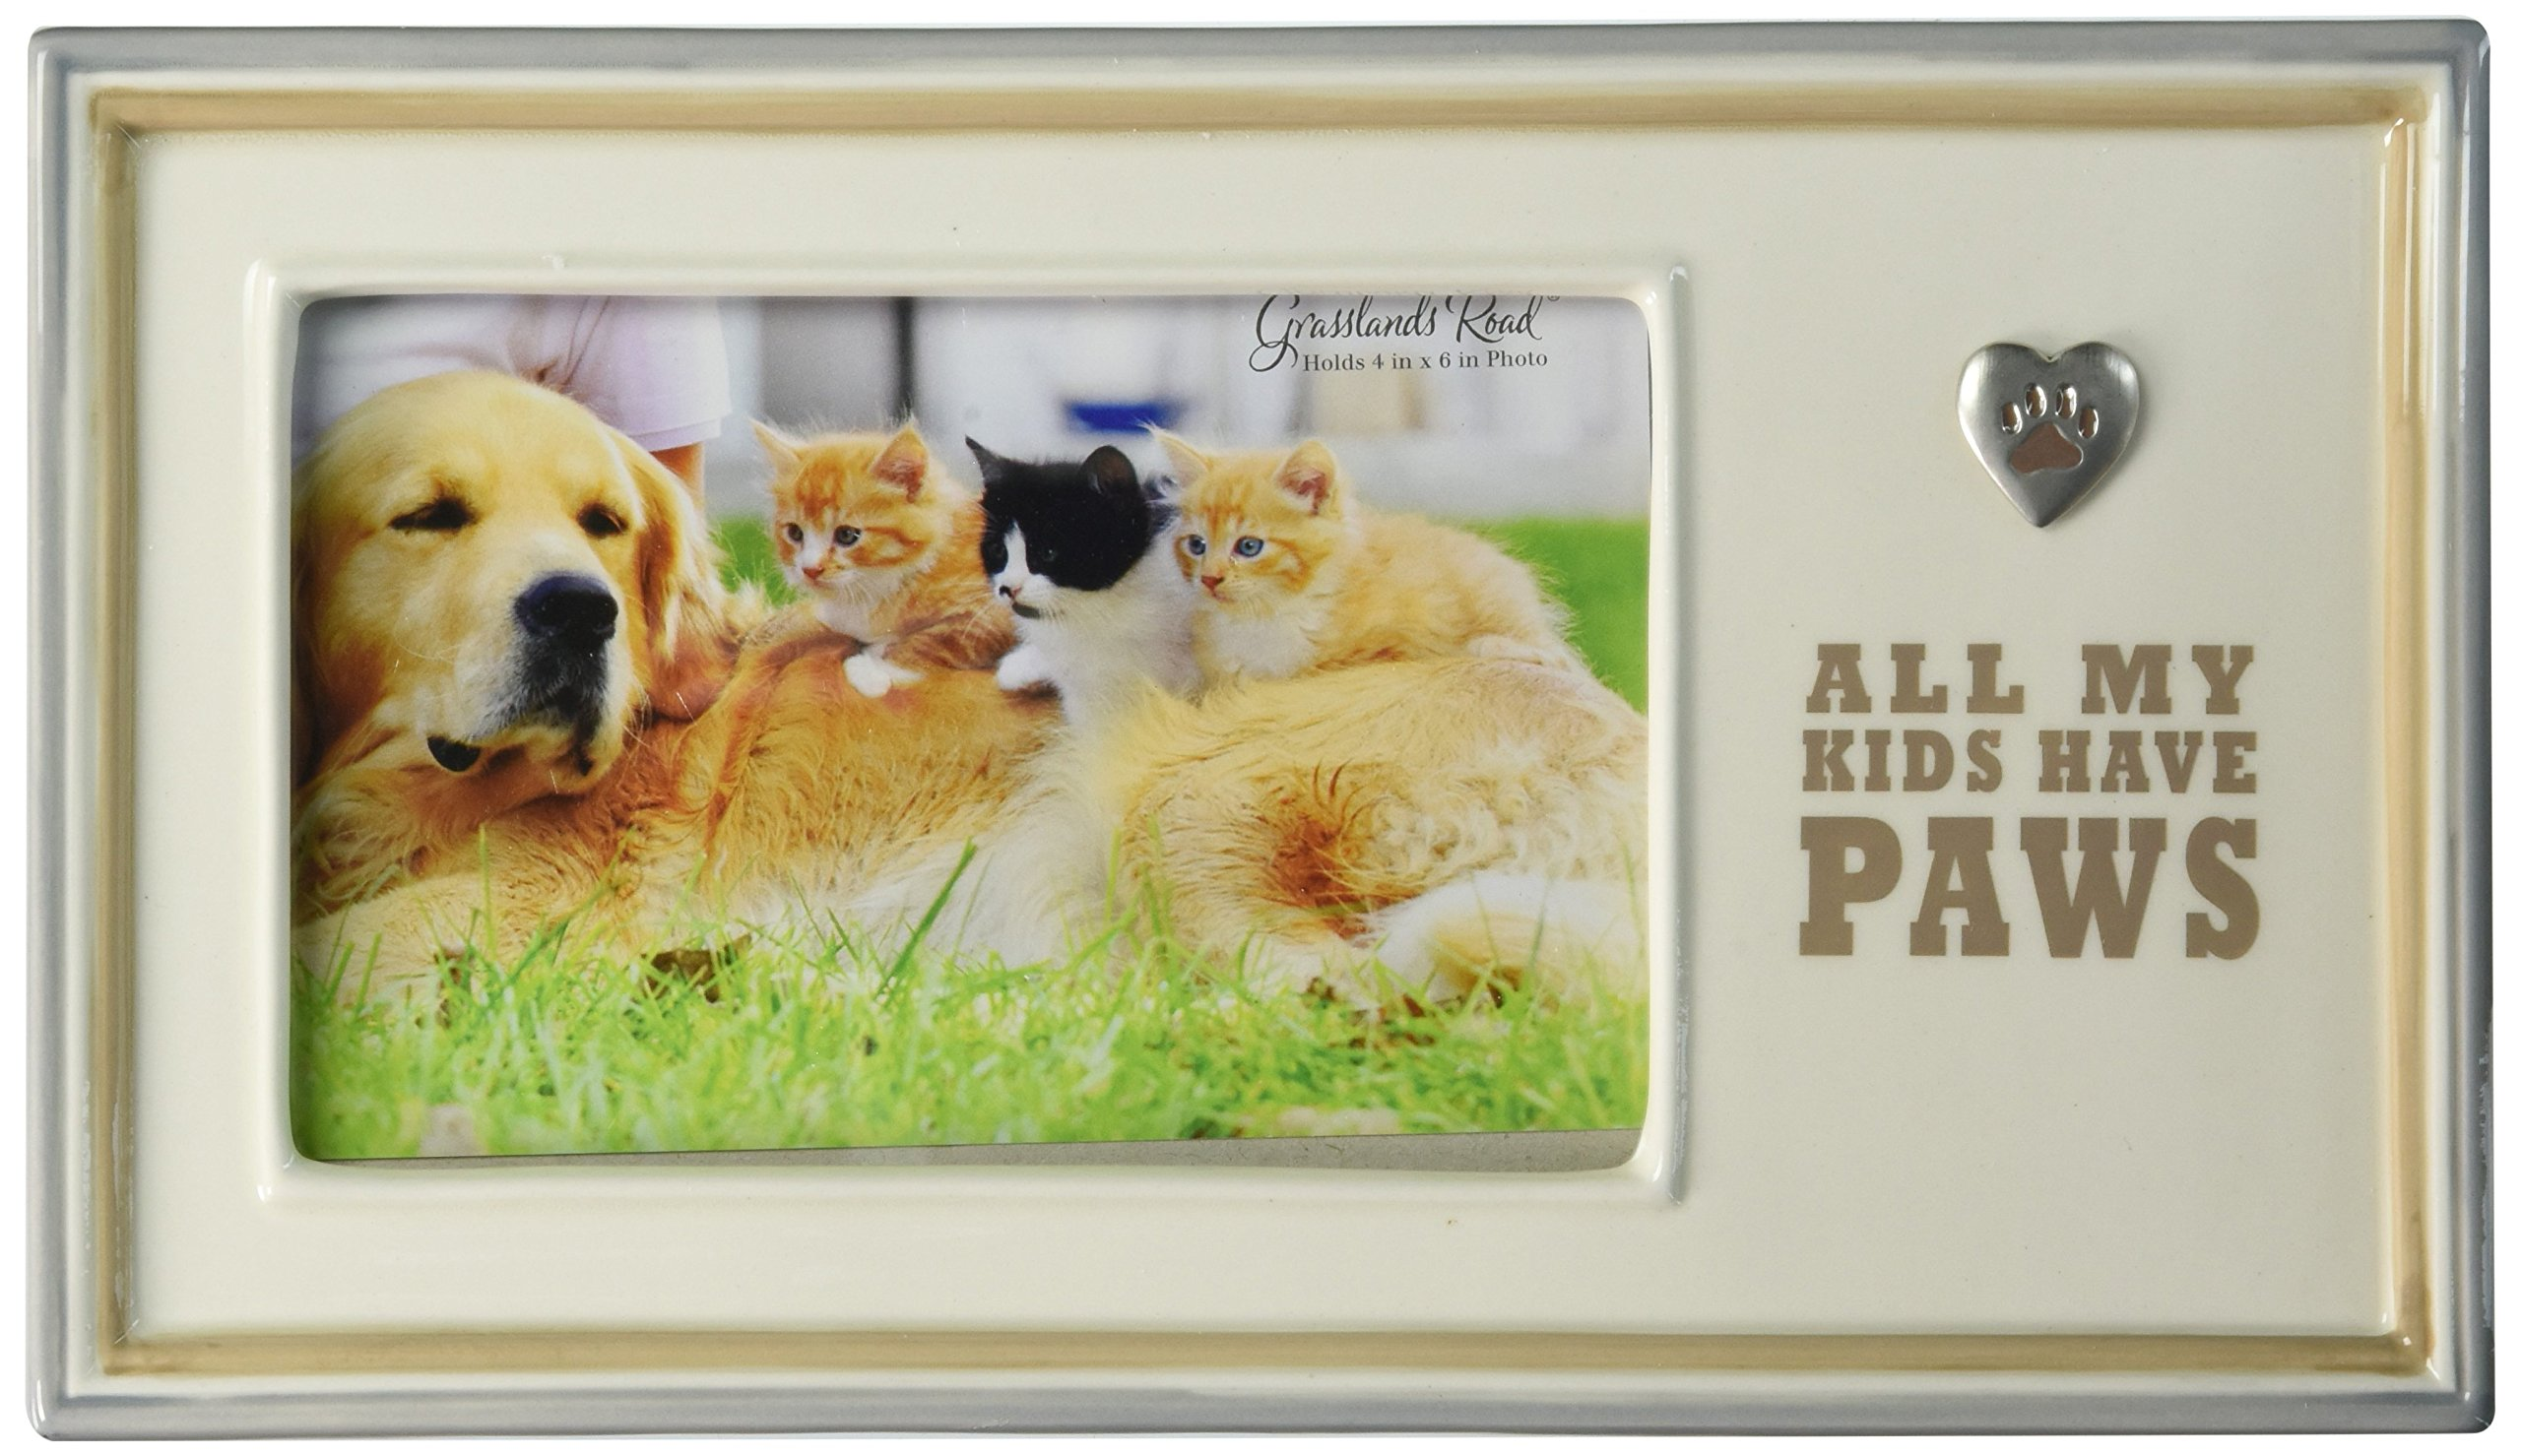 Grasslands Road All My Kids Have Paws Ceramic Frame, Antique White, 4 by 6-Inch